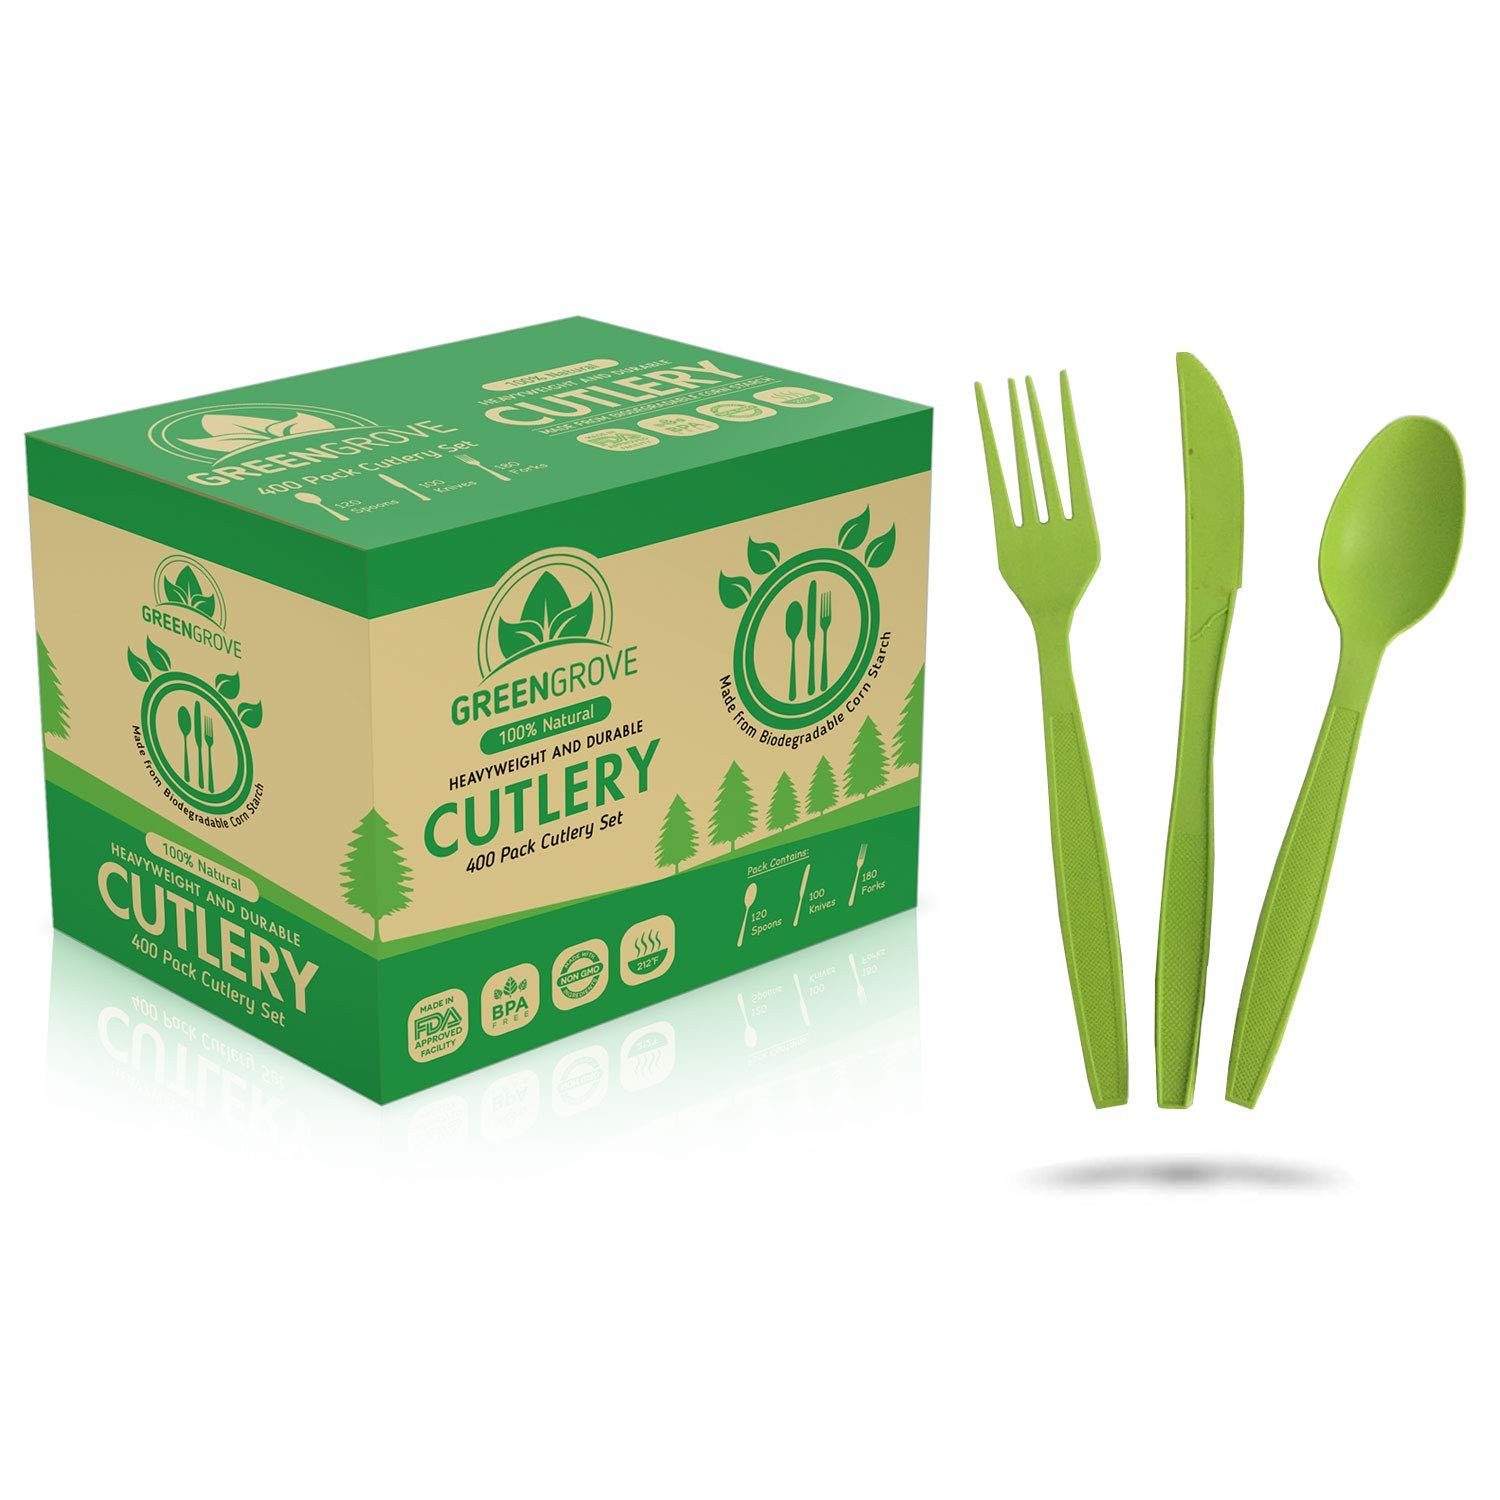 100% Compostable Forks, Spoons and Knives Biodegradable Cutlery Combo Set- 400 Large Ecofriendly Silverware Utensils with Tray